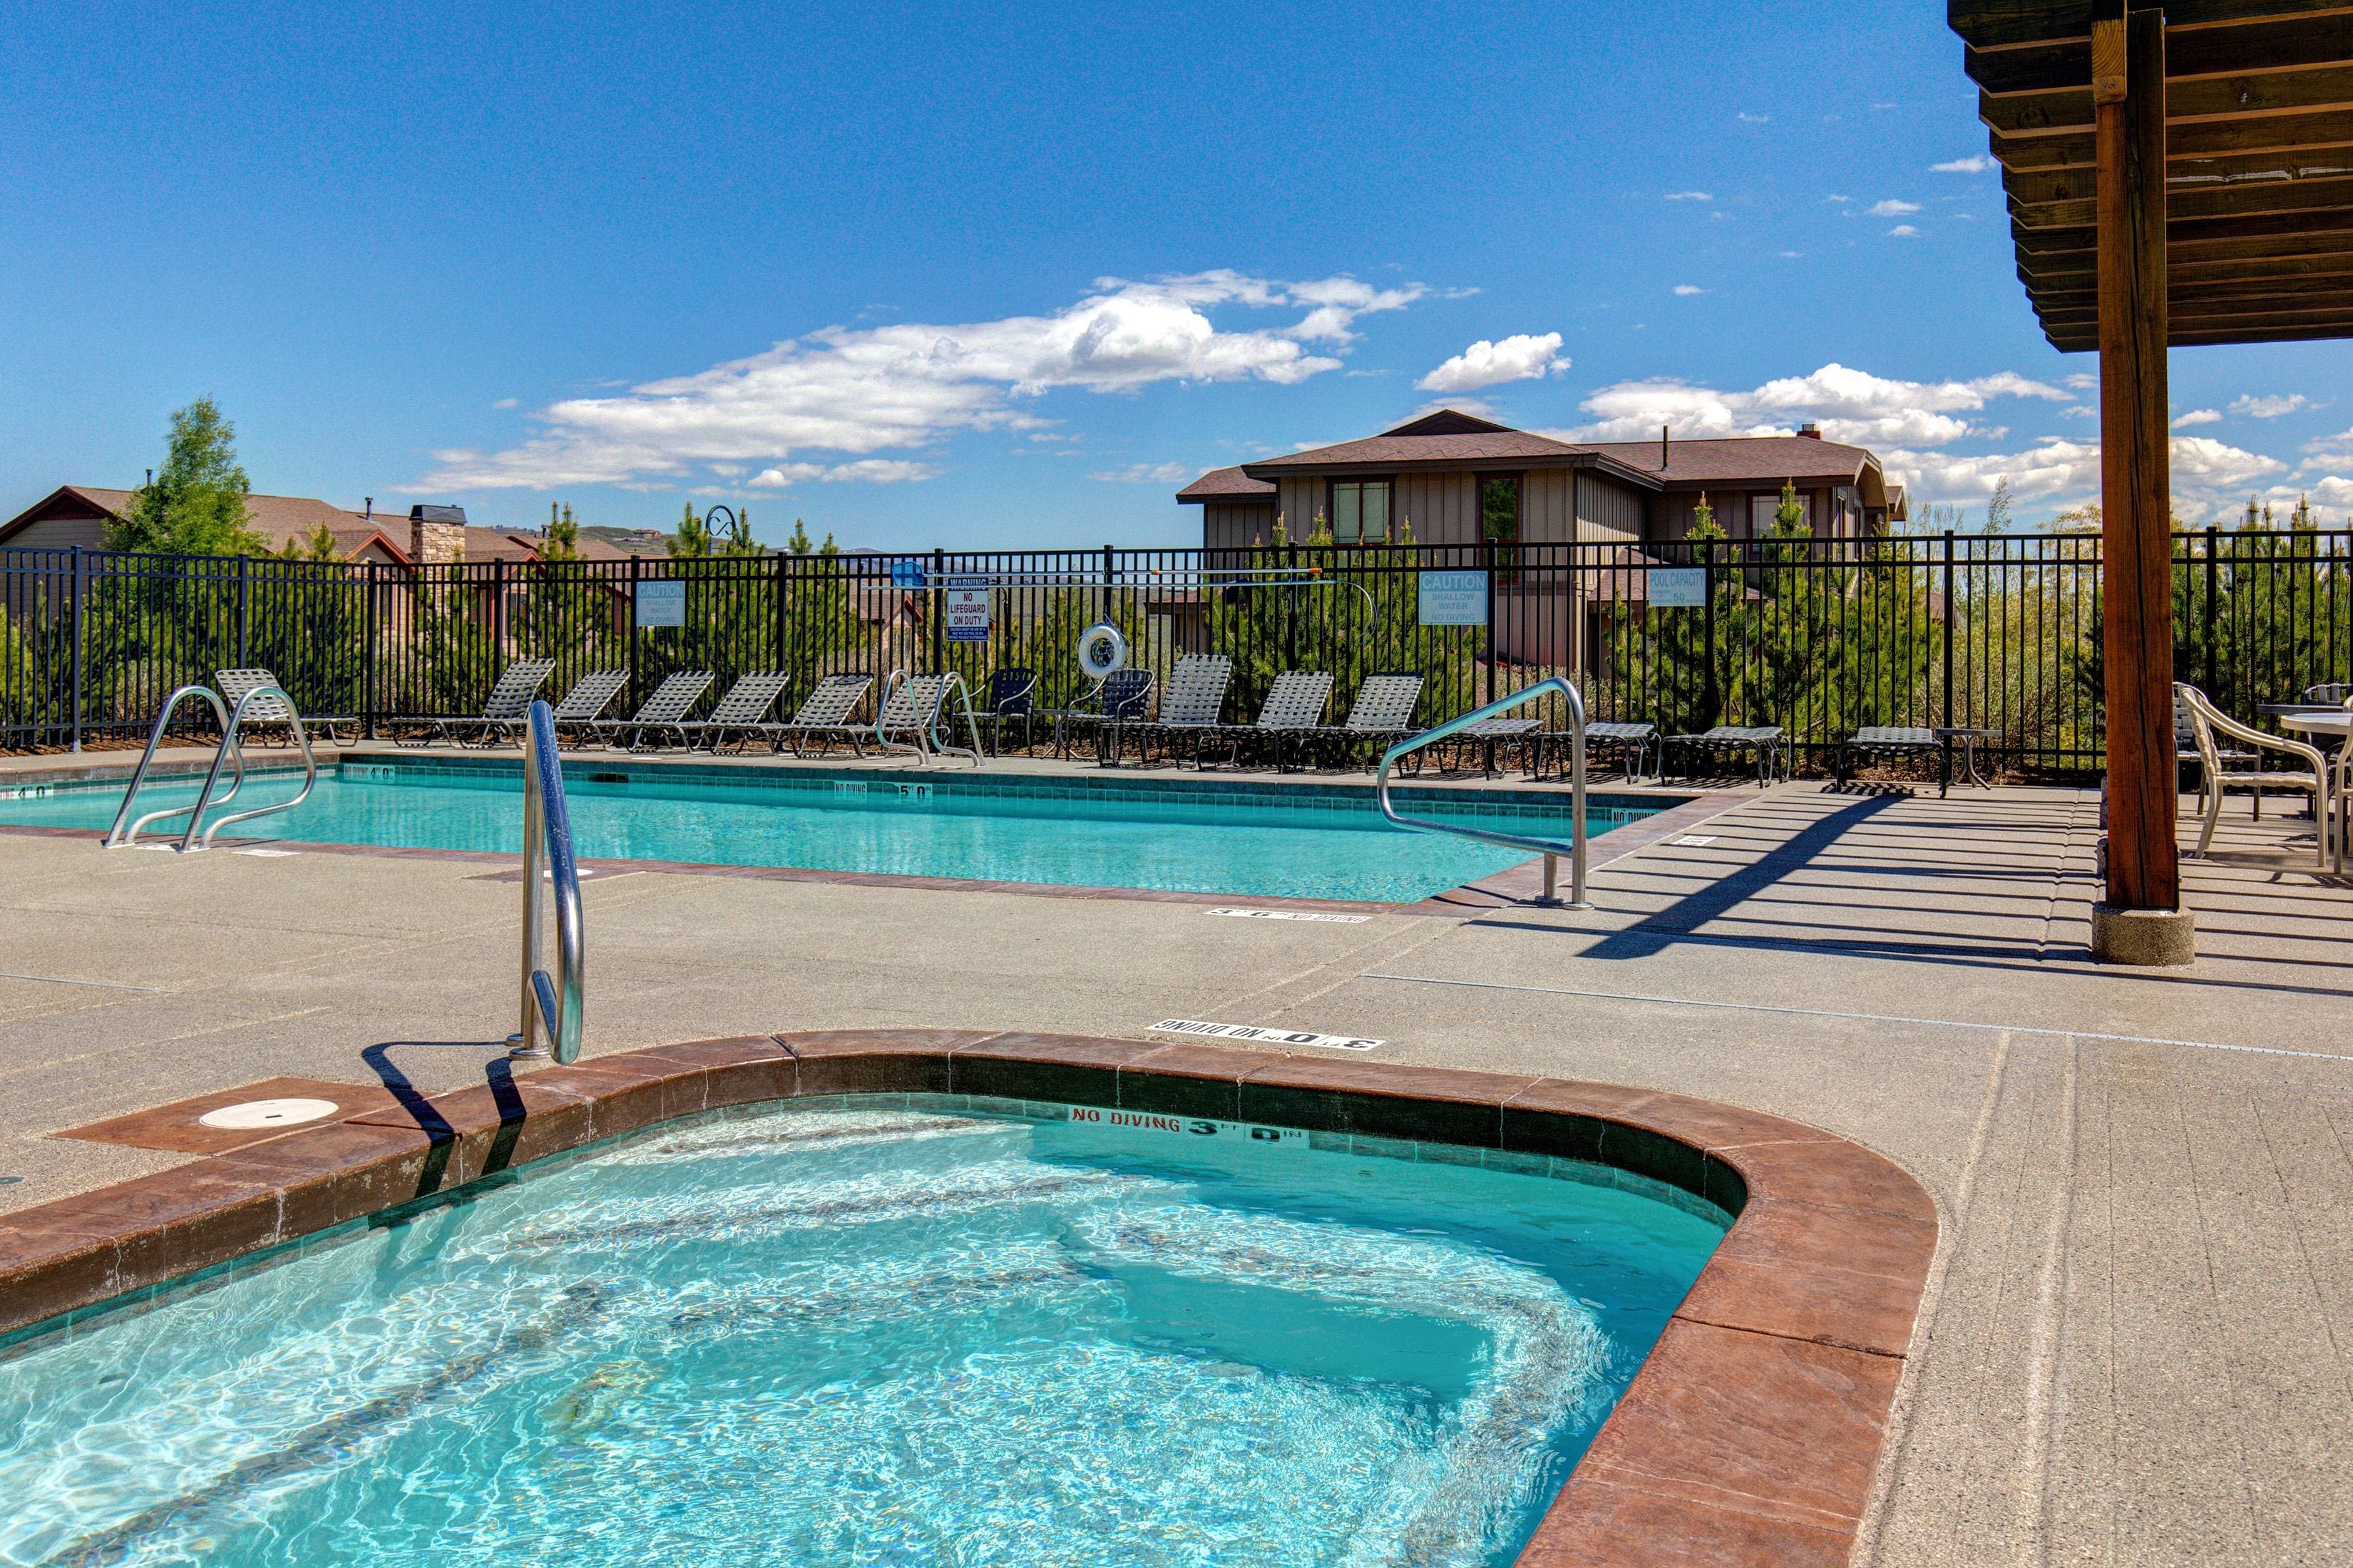 As part of Bear Hollow Village, enjoy an array of amenities, including a clubhouse pool and spa.